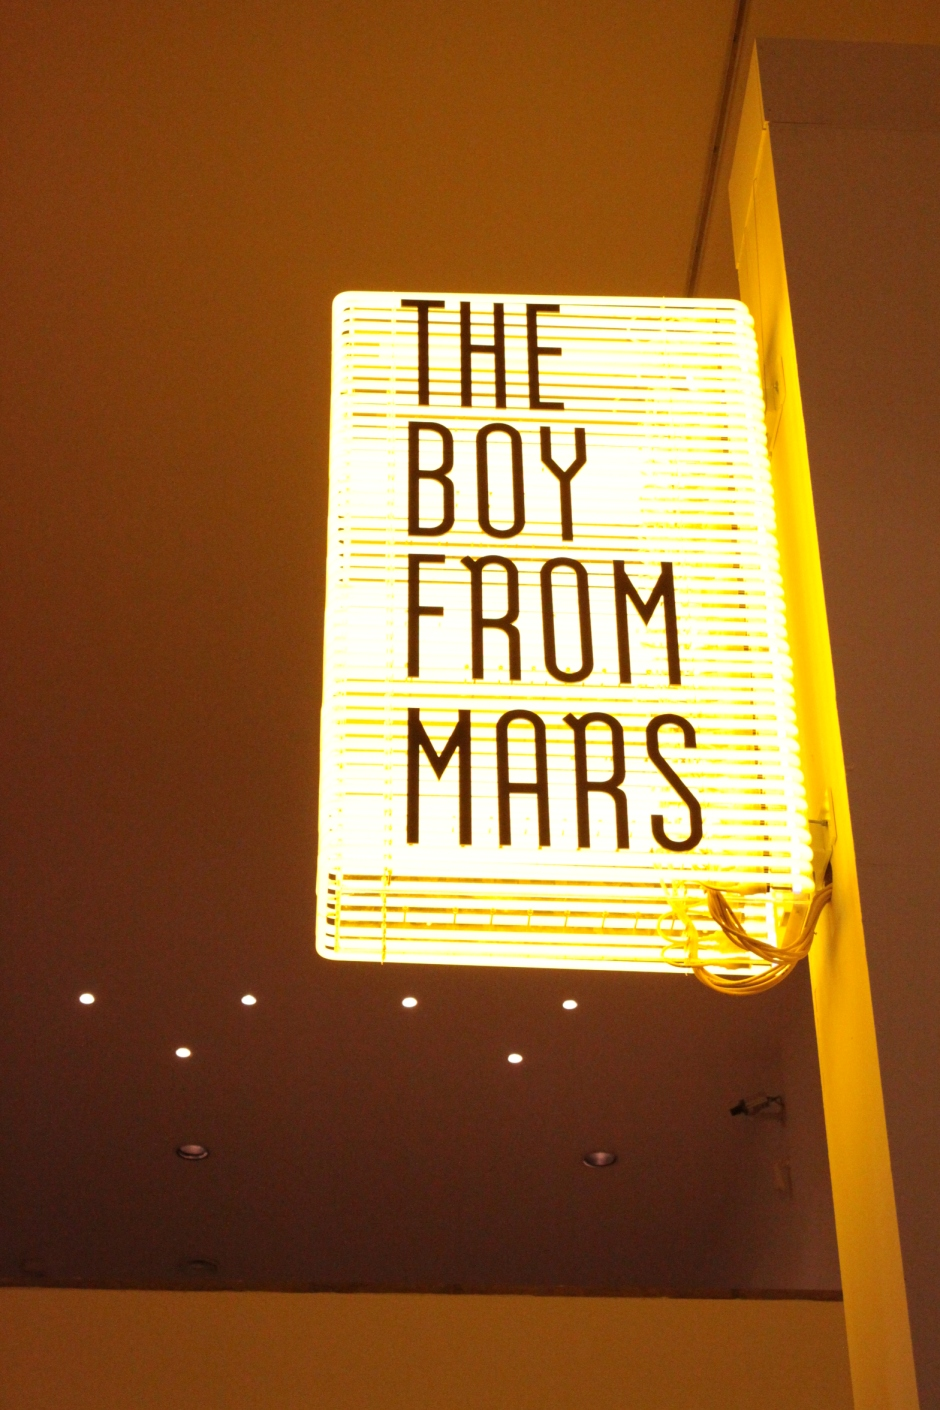 The Boy from Mars, Philippe Parreno, 2005